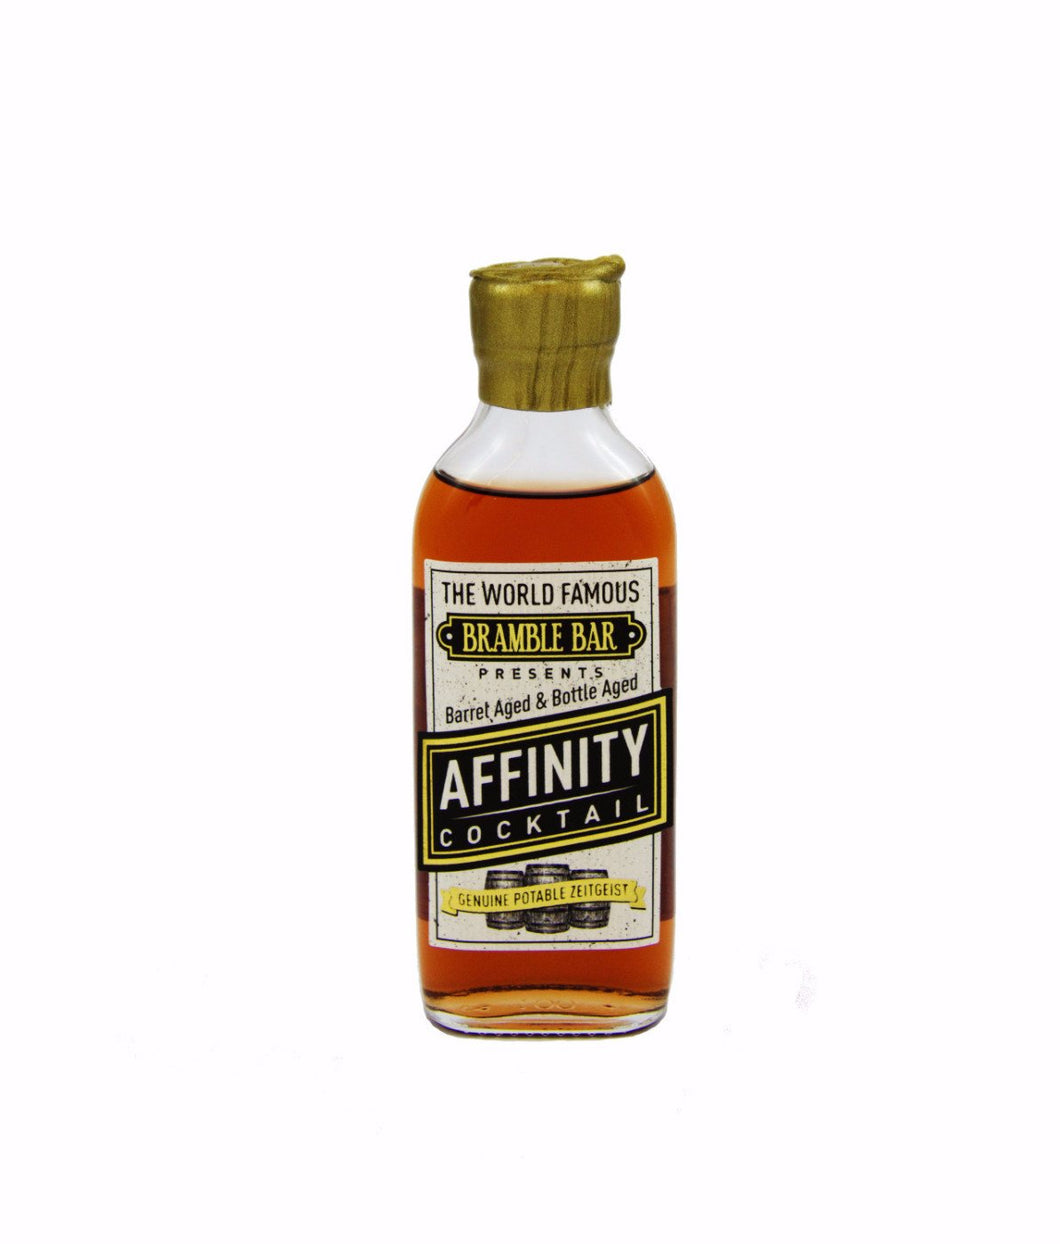 affinity cocktail by bramble bar